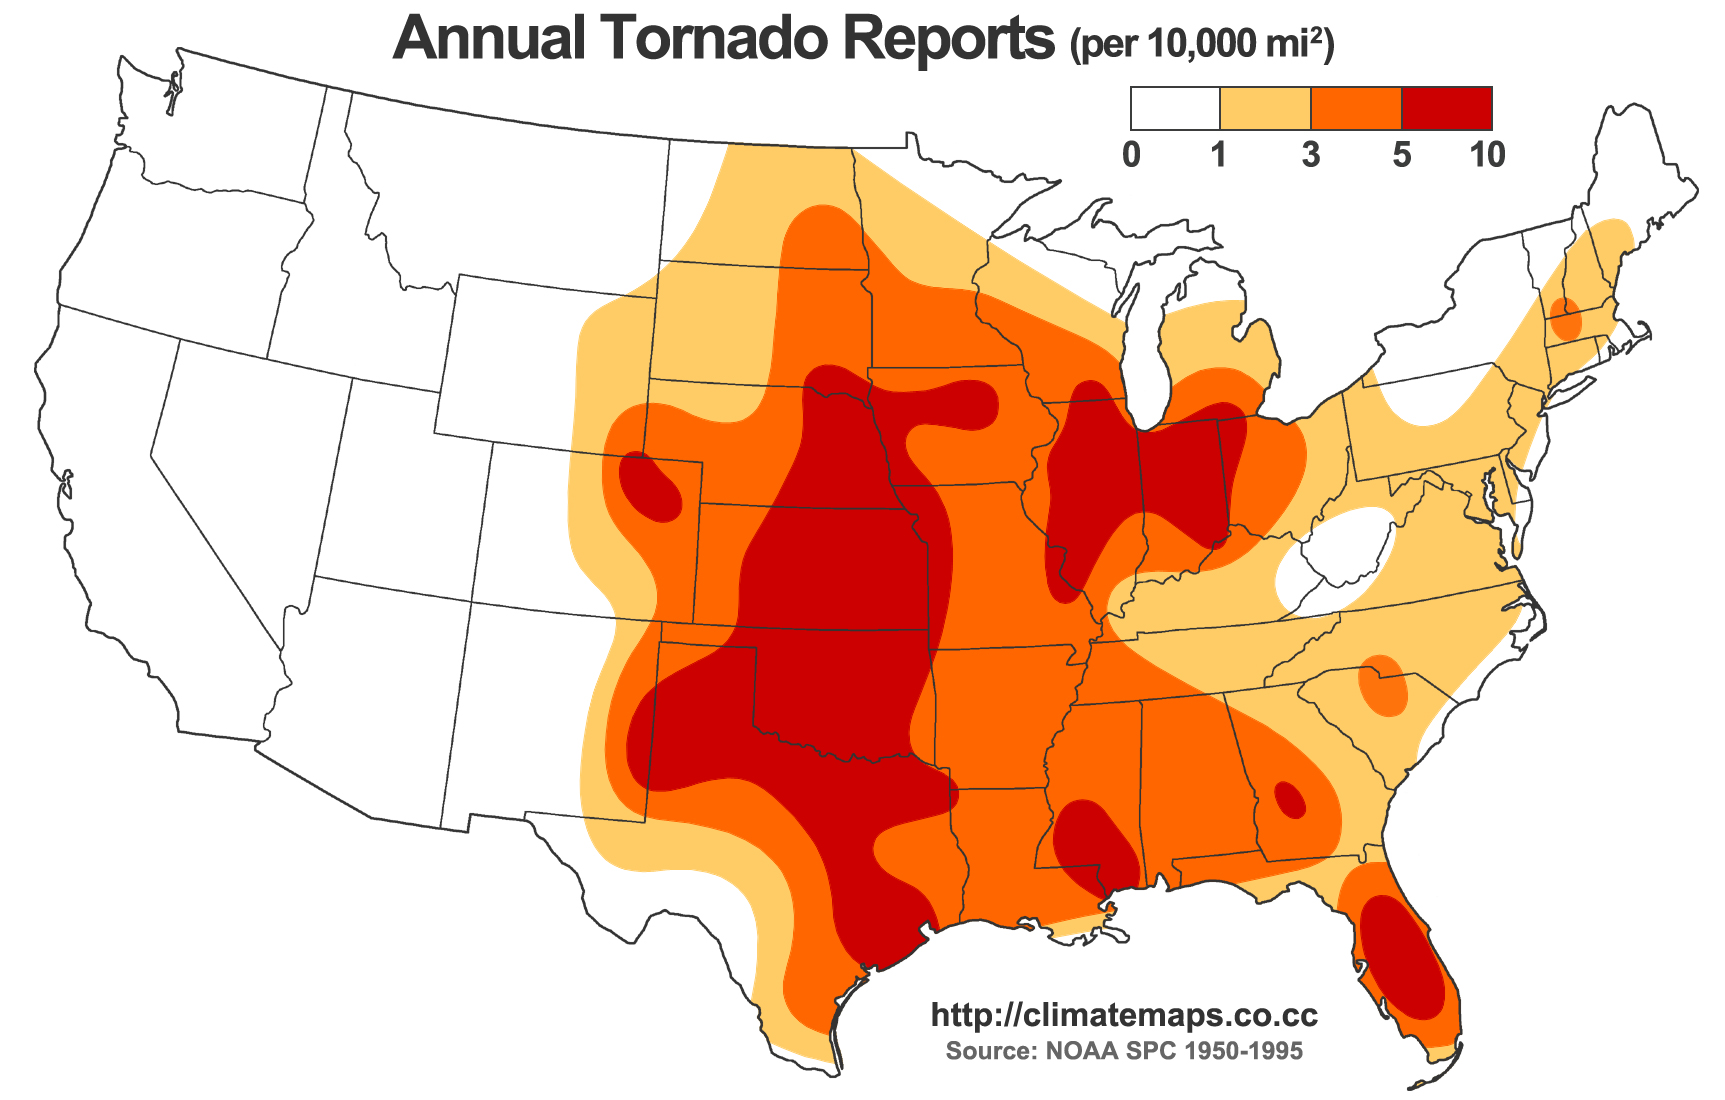 Map Of Tornado Alley Us http://www.city-data.com/forum/city-vs-city/1513917-most-tornado-prone-areas-u-s.html